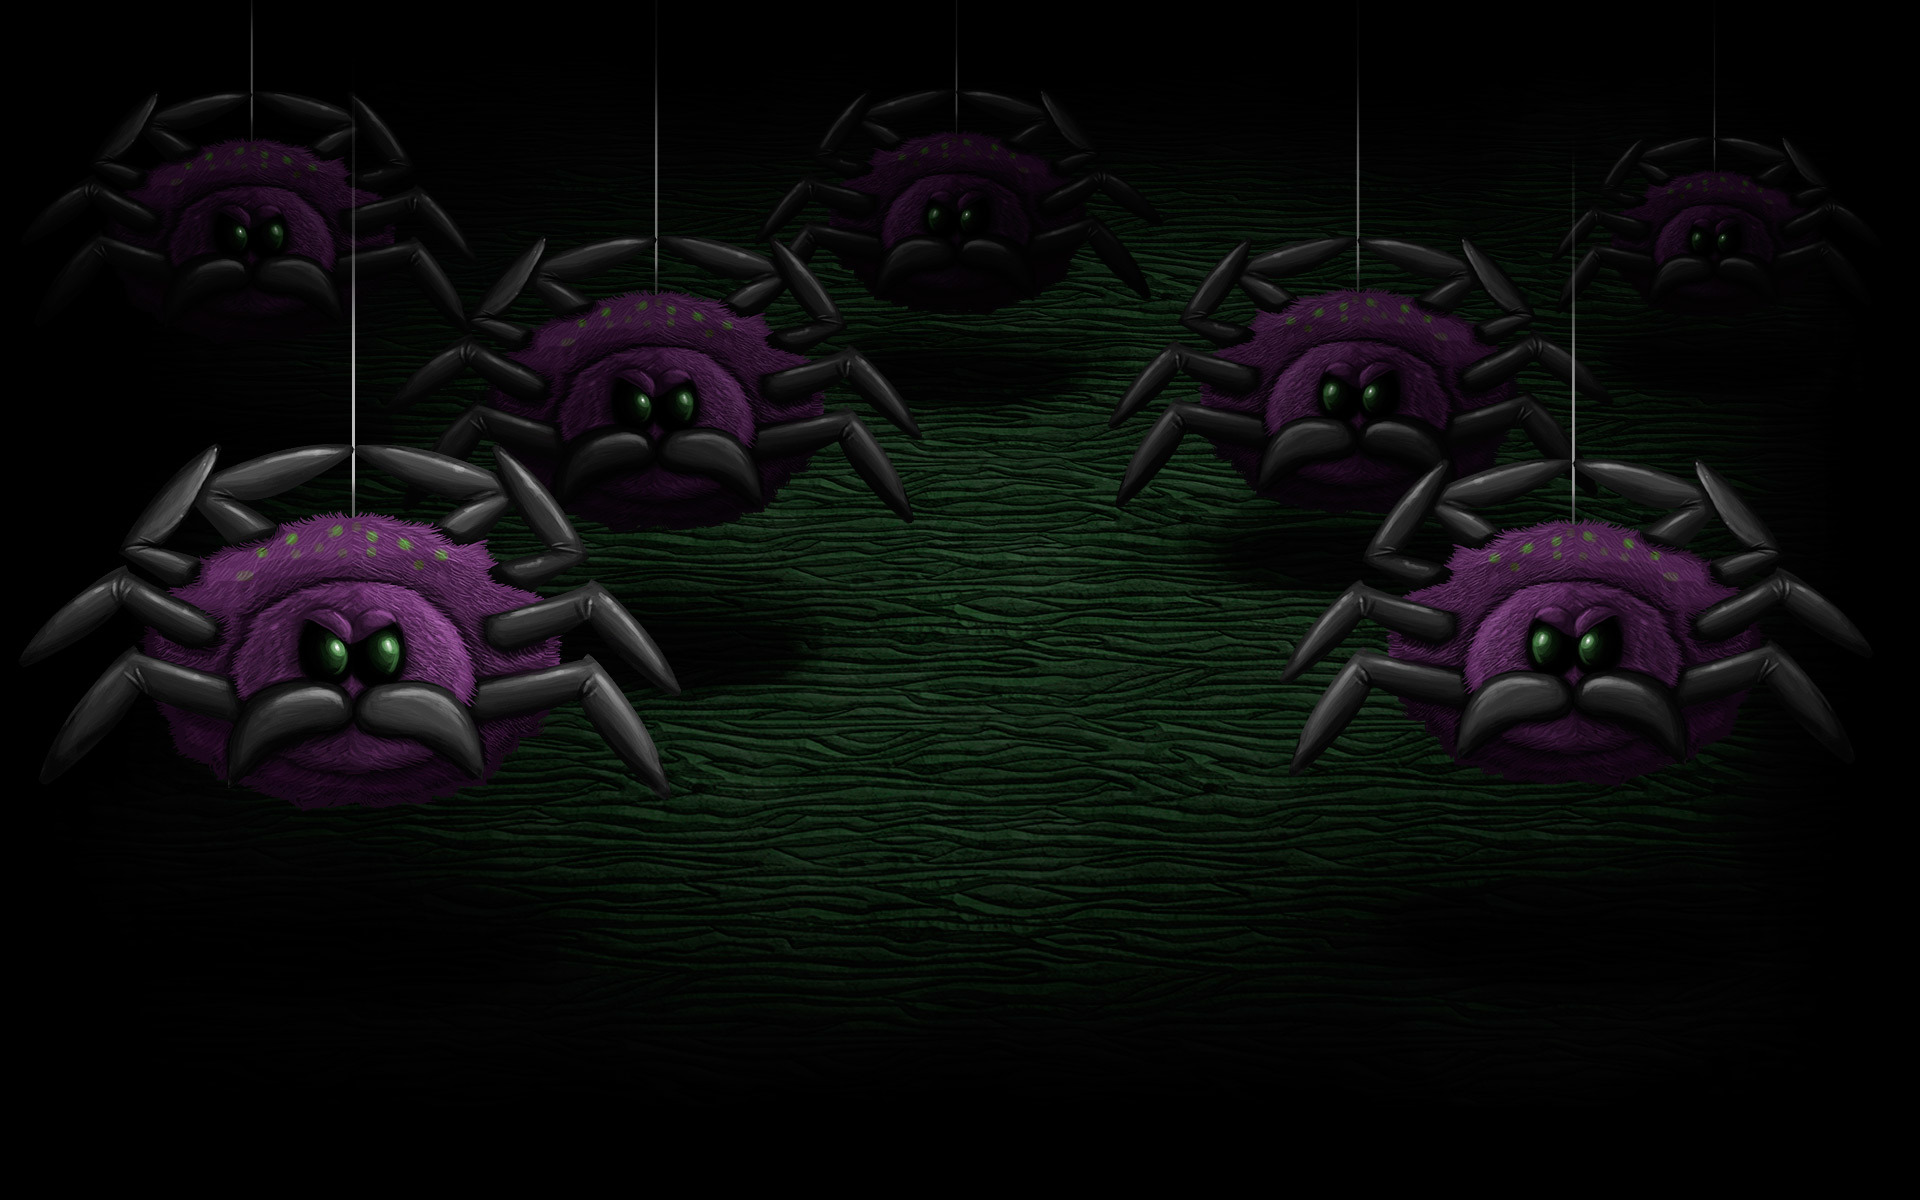 391600-Spiders